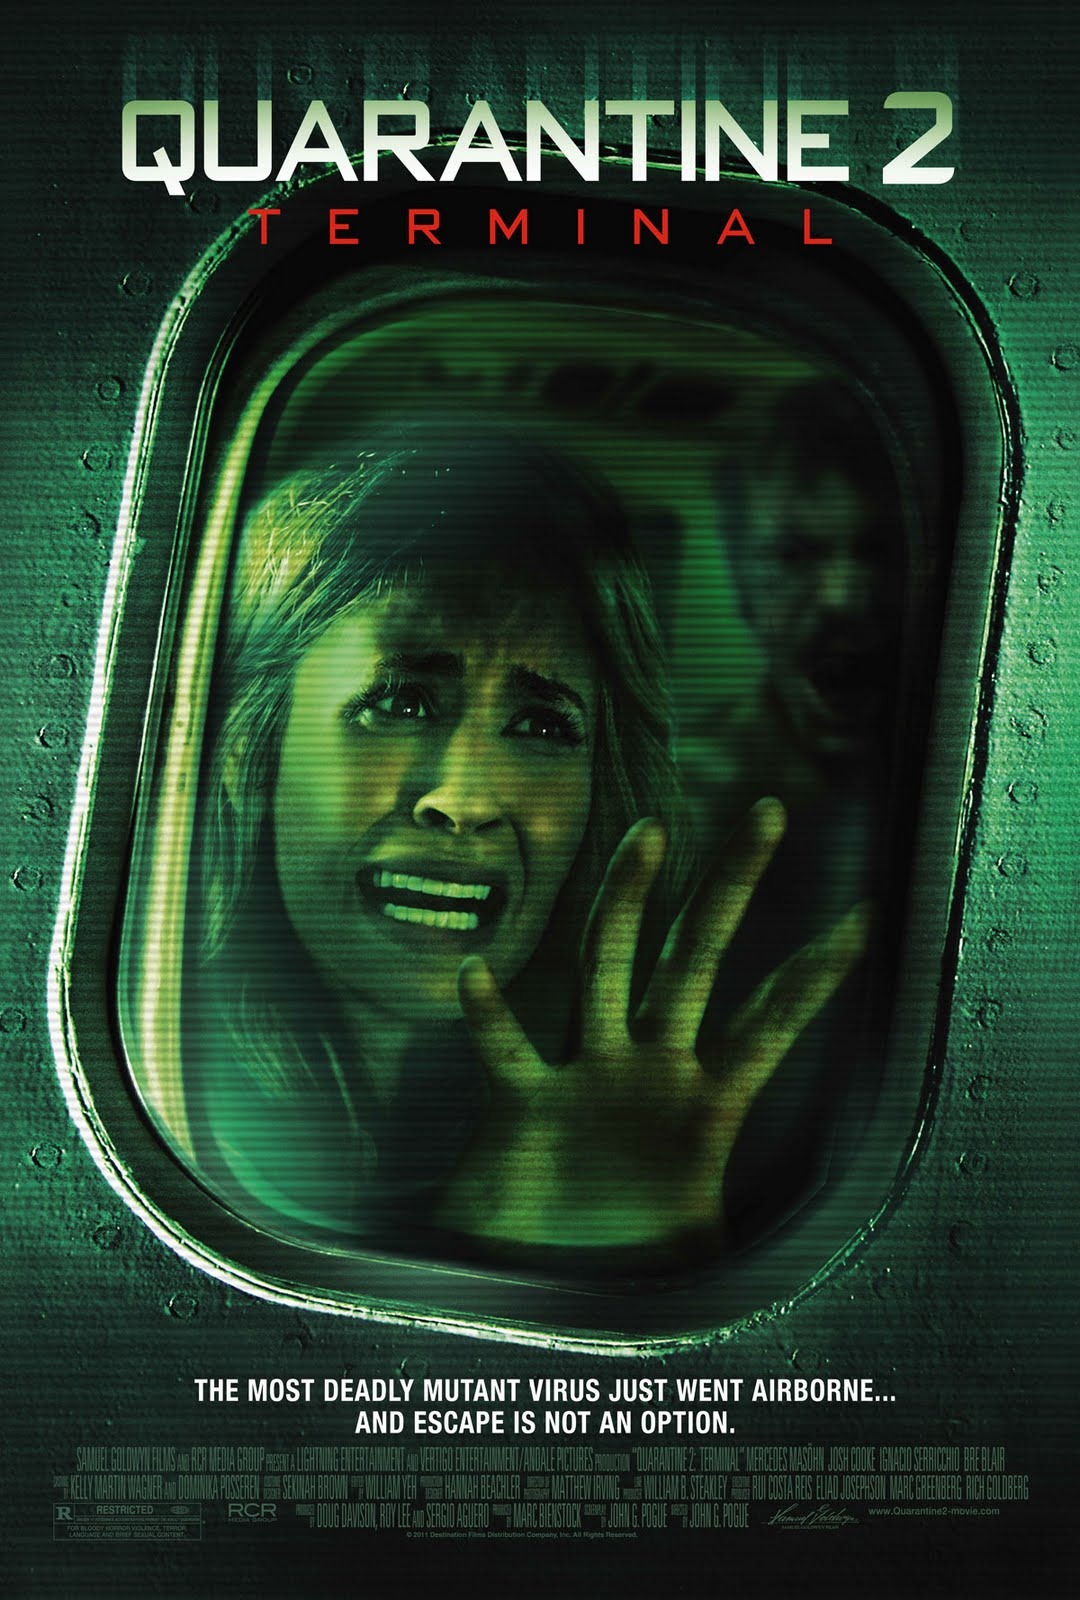 Quarantine-2-2011-Movie-Poster.jpg